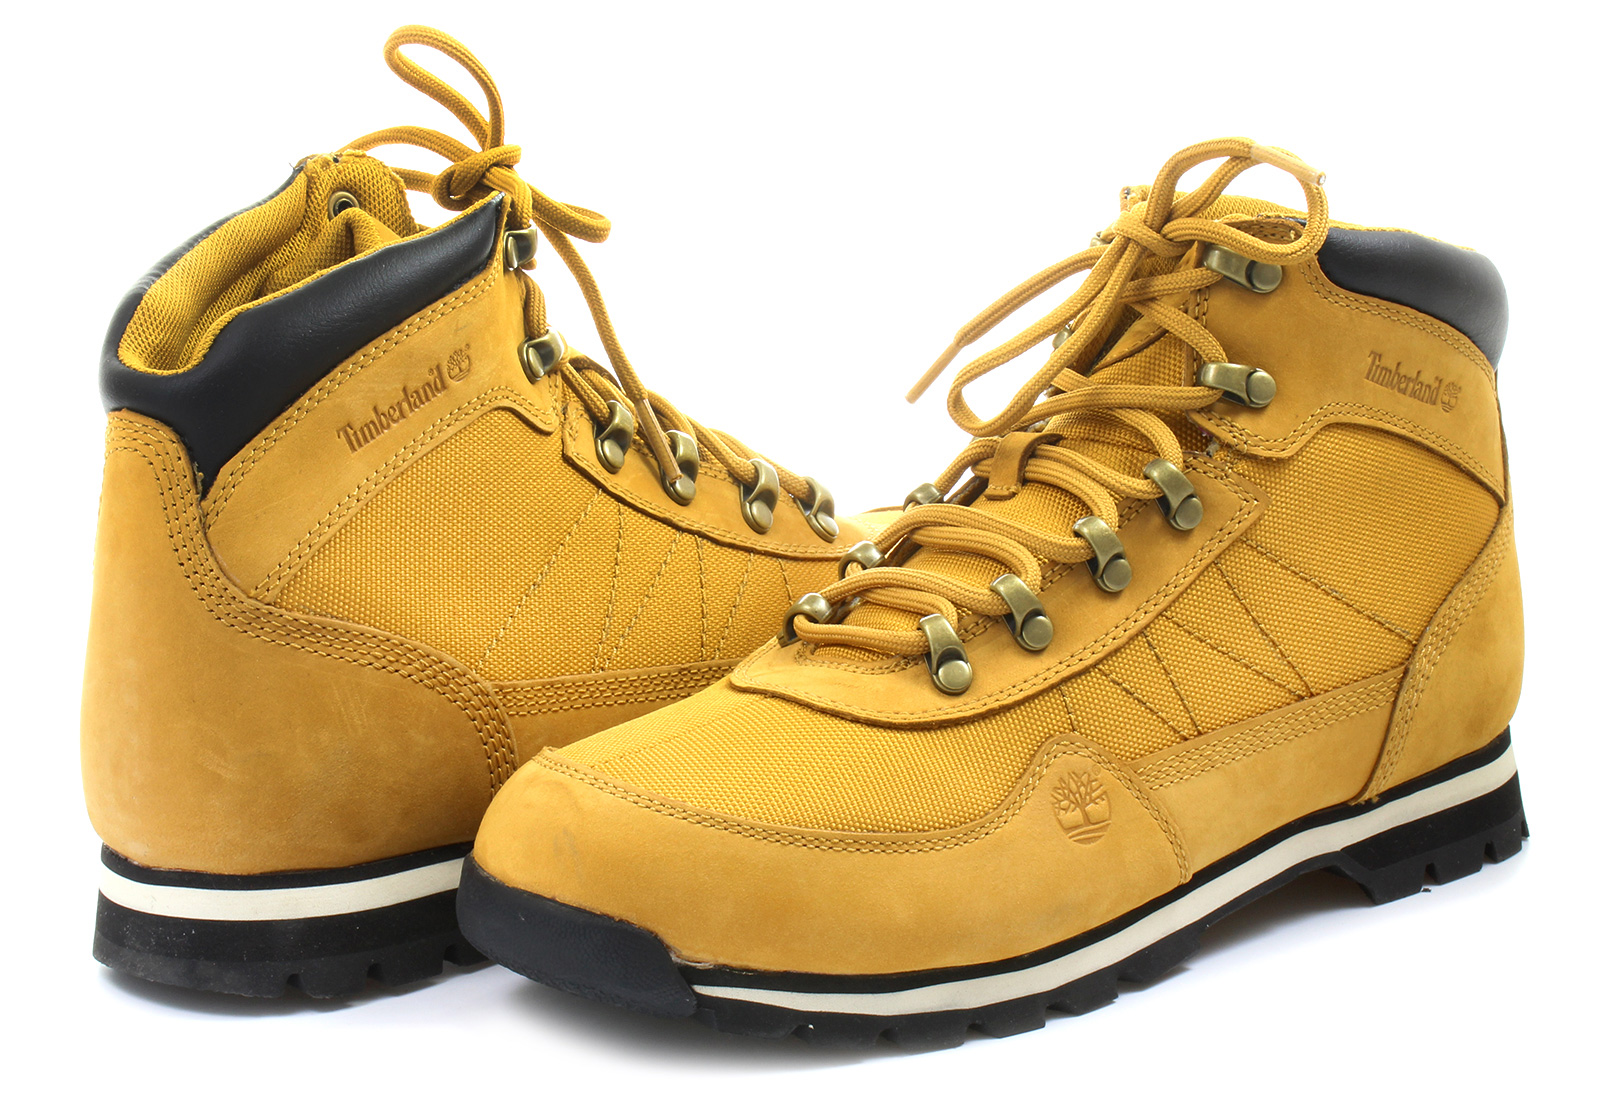 Timberland Topánky - Euro Hiker Fabric W leather - 6658A-WHE ... cd01833a68a